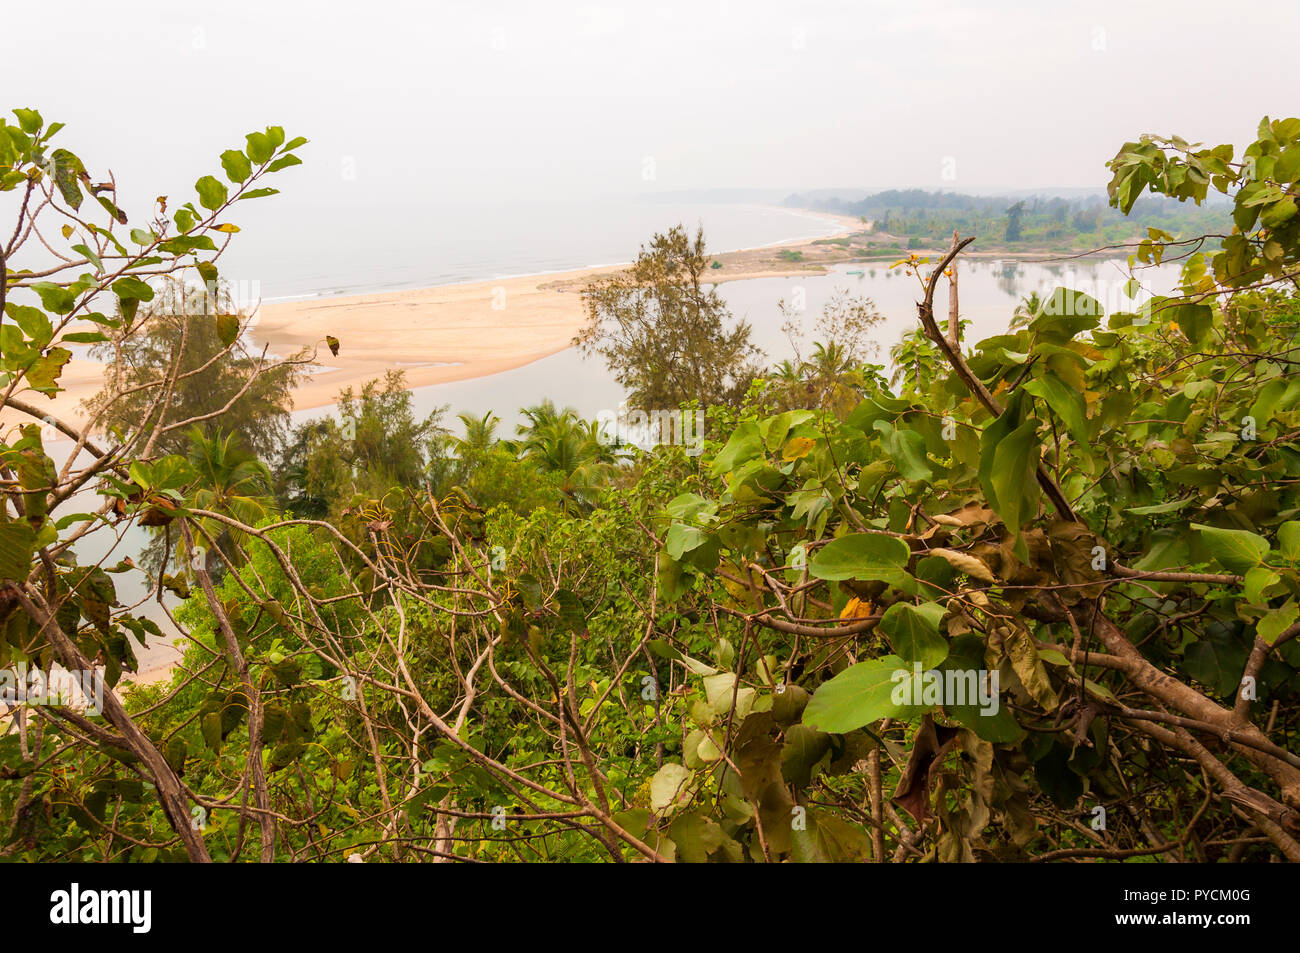 Here through the jungles you can see the famous Paradise Beach that is located on the southeast part of Maharashtra state. - Stock Image